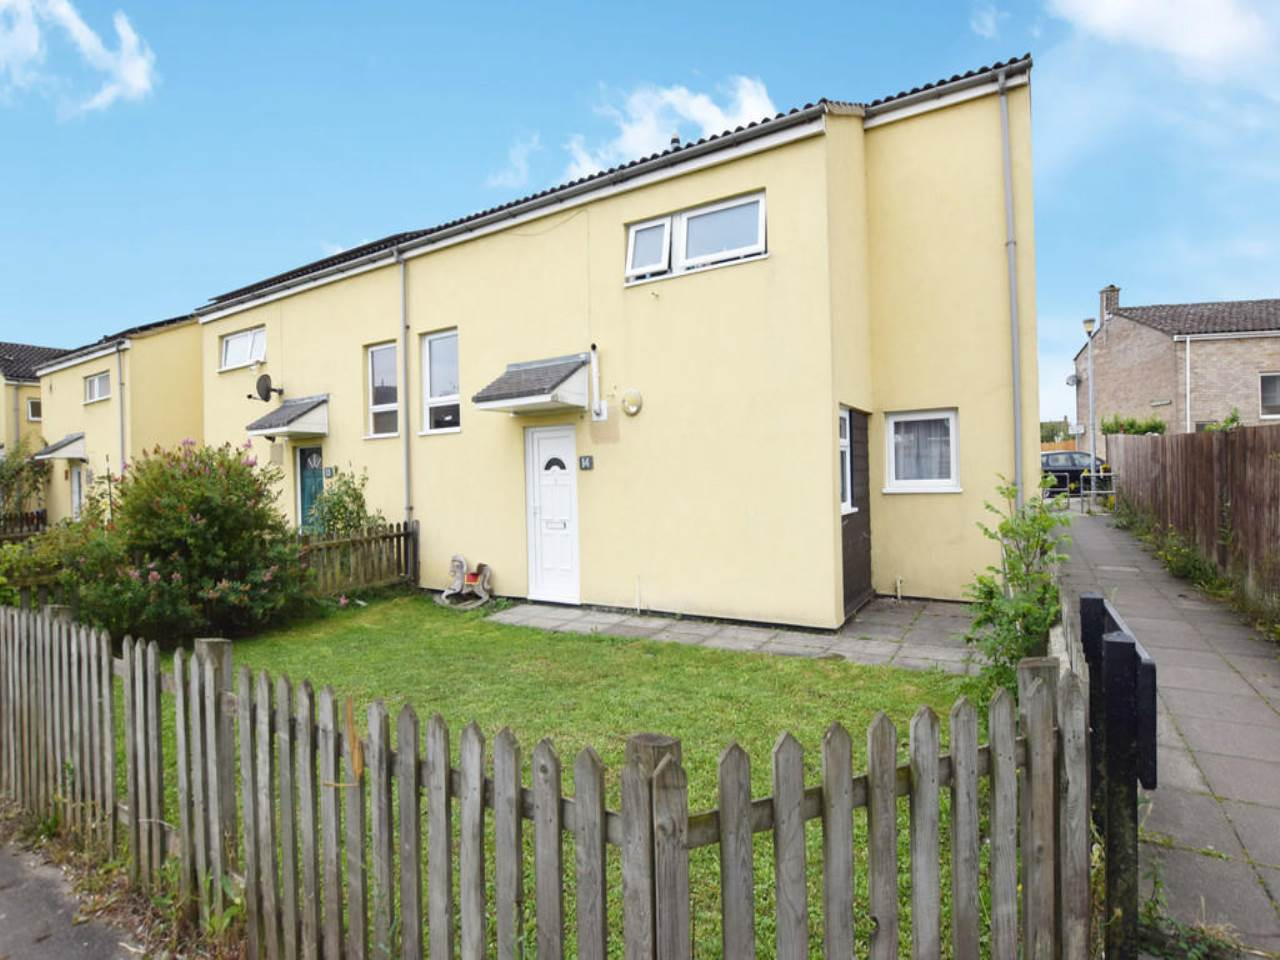 3 bed house to rent in Haverhill, CB9